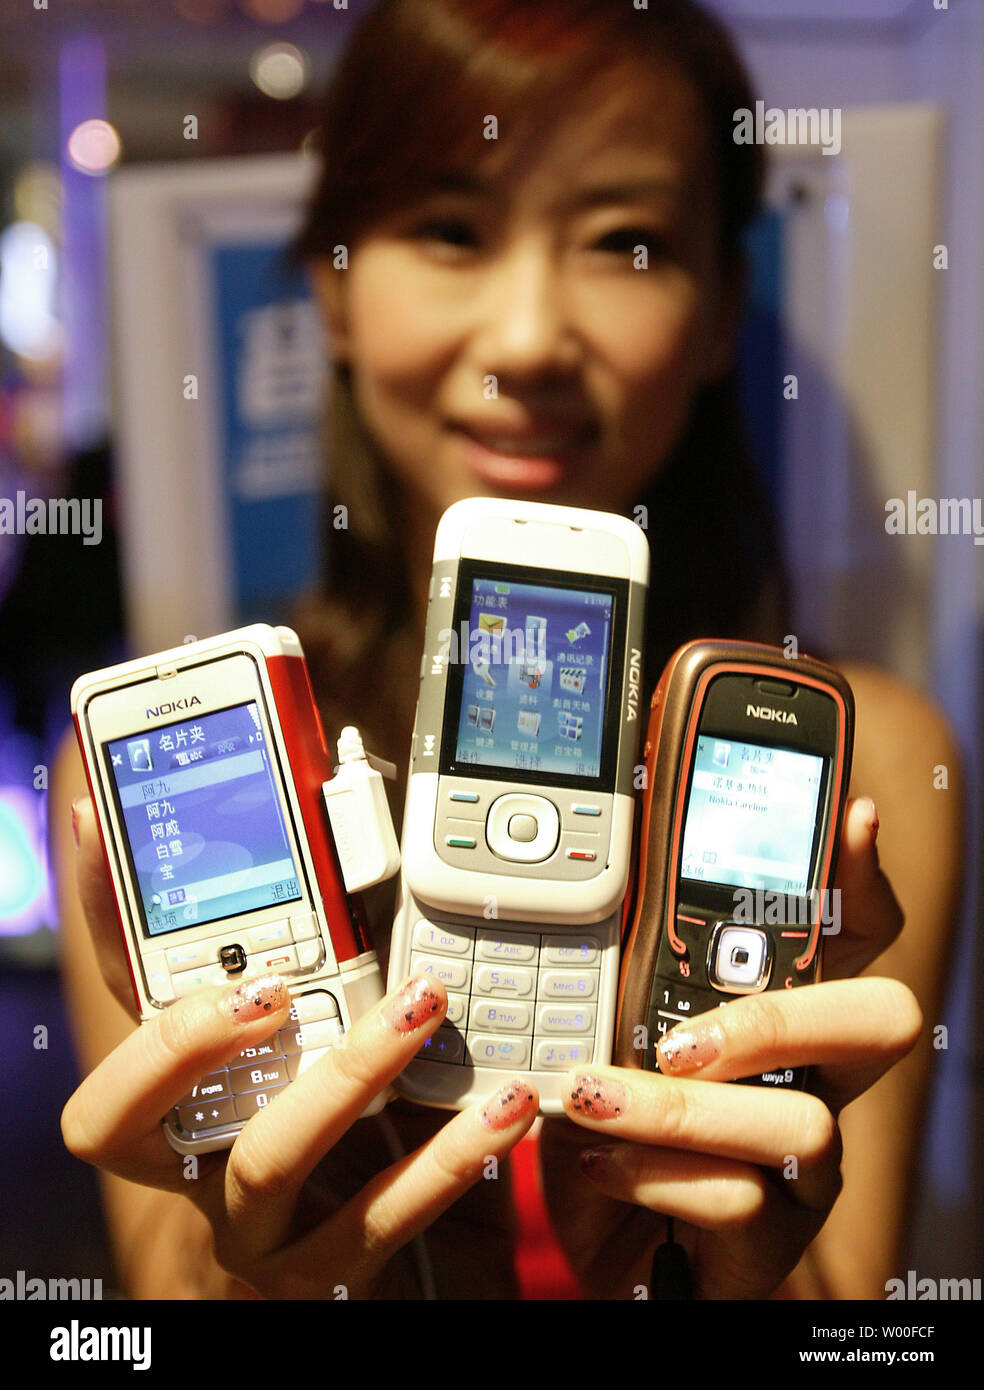 A Chinese model holds Nokia's 5000 series mobile phones on display at Nokia's 'Our Mobile Life 2007' conference in Beijing, China. on December 03, 2006. Nokia, the world's biggest cell- phone maker, expects the number of handset users in China to rise 11 percent to more than 500 million in 2007, boosted by growth in rural areas.  The country will add a further 160 million users from next year until 2010, Espoo, Finland-based Nokia said in a statement issued in Beijing today. China had 449 million users as of October, more than the populations of Japan and the U.S. combined.  (UPI Photo/Stephen - Stock Image